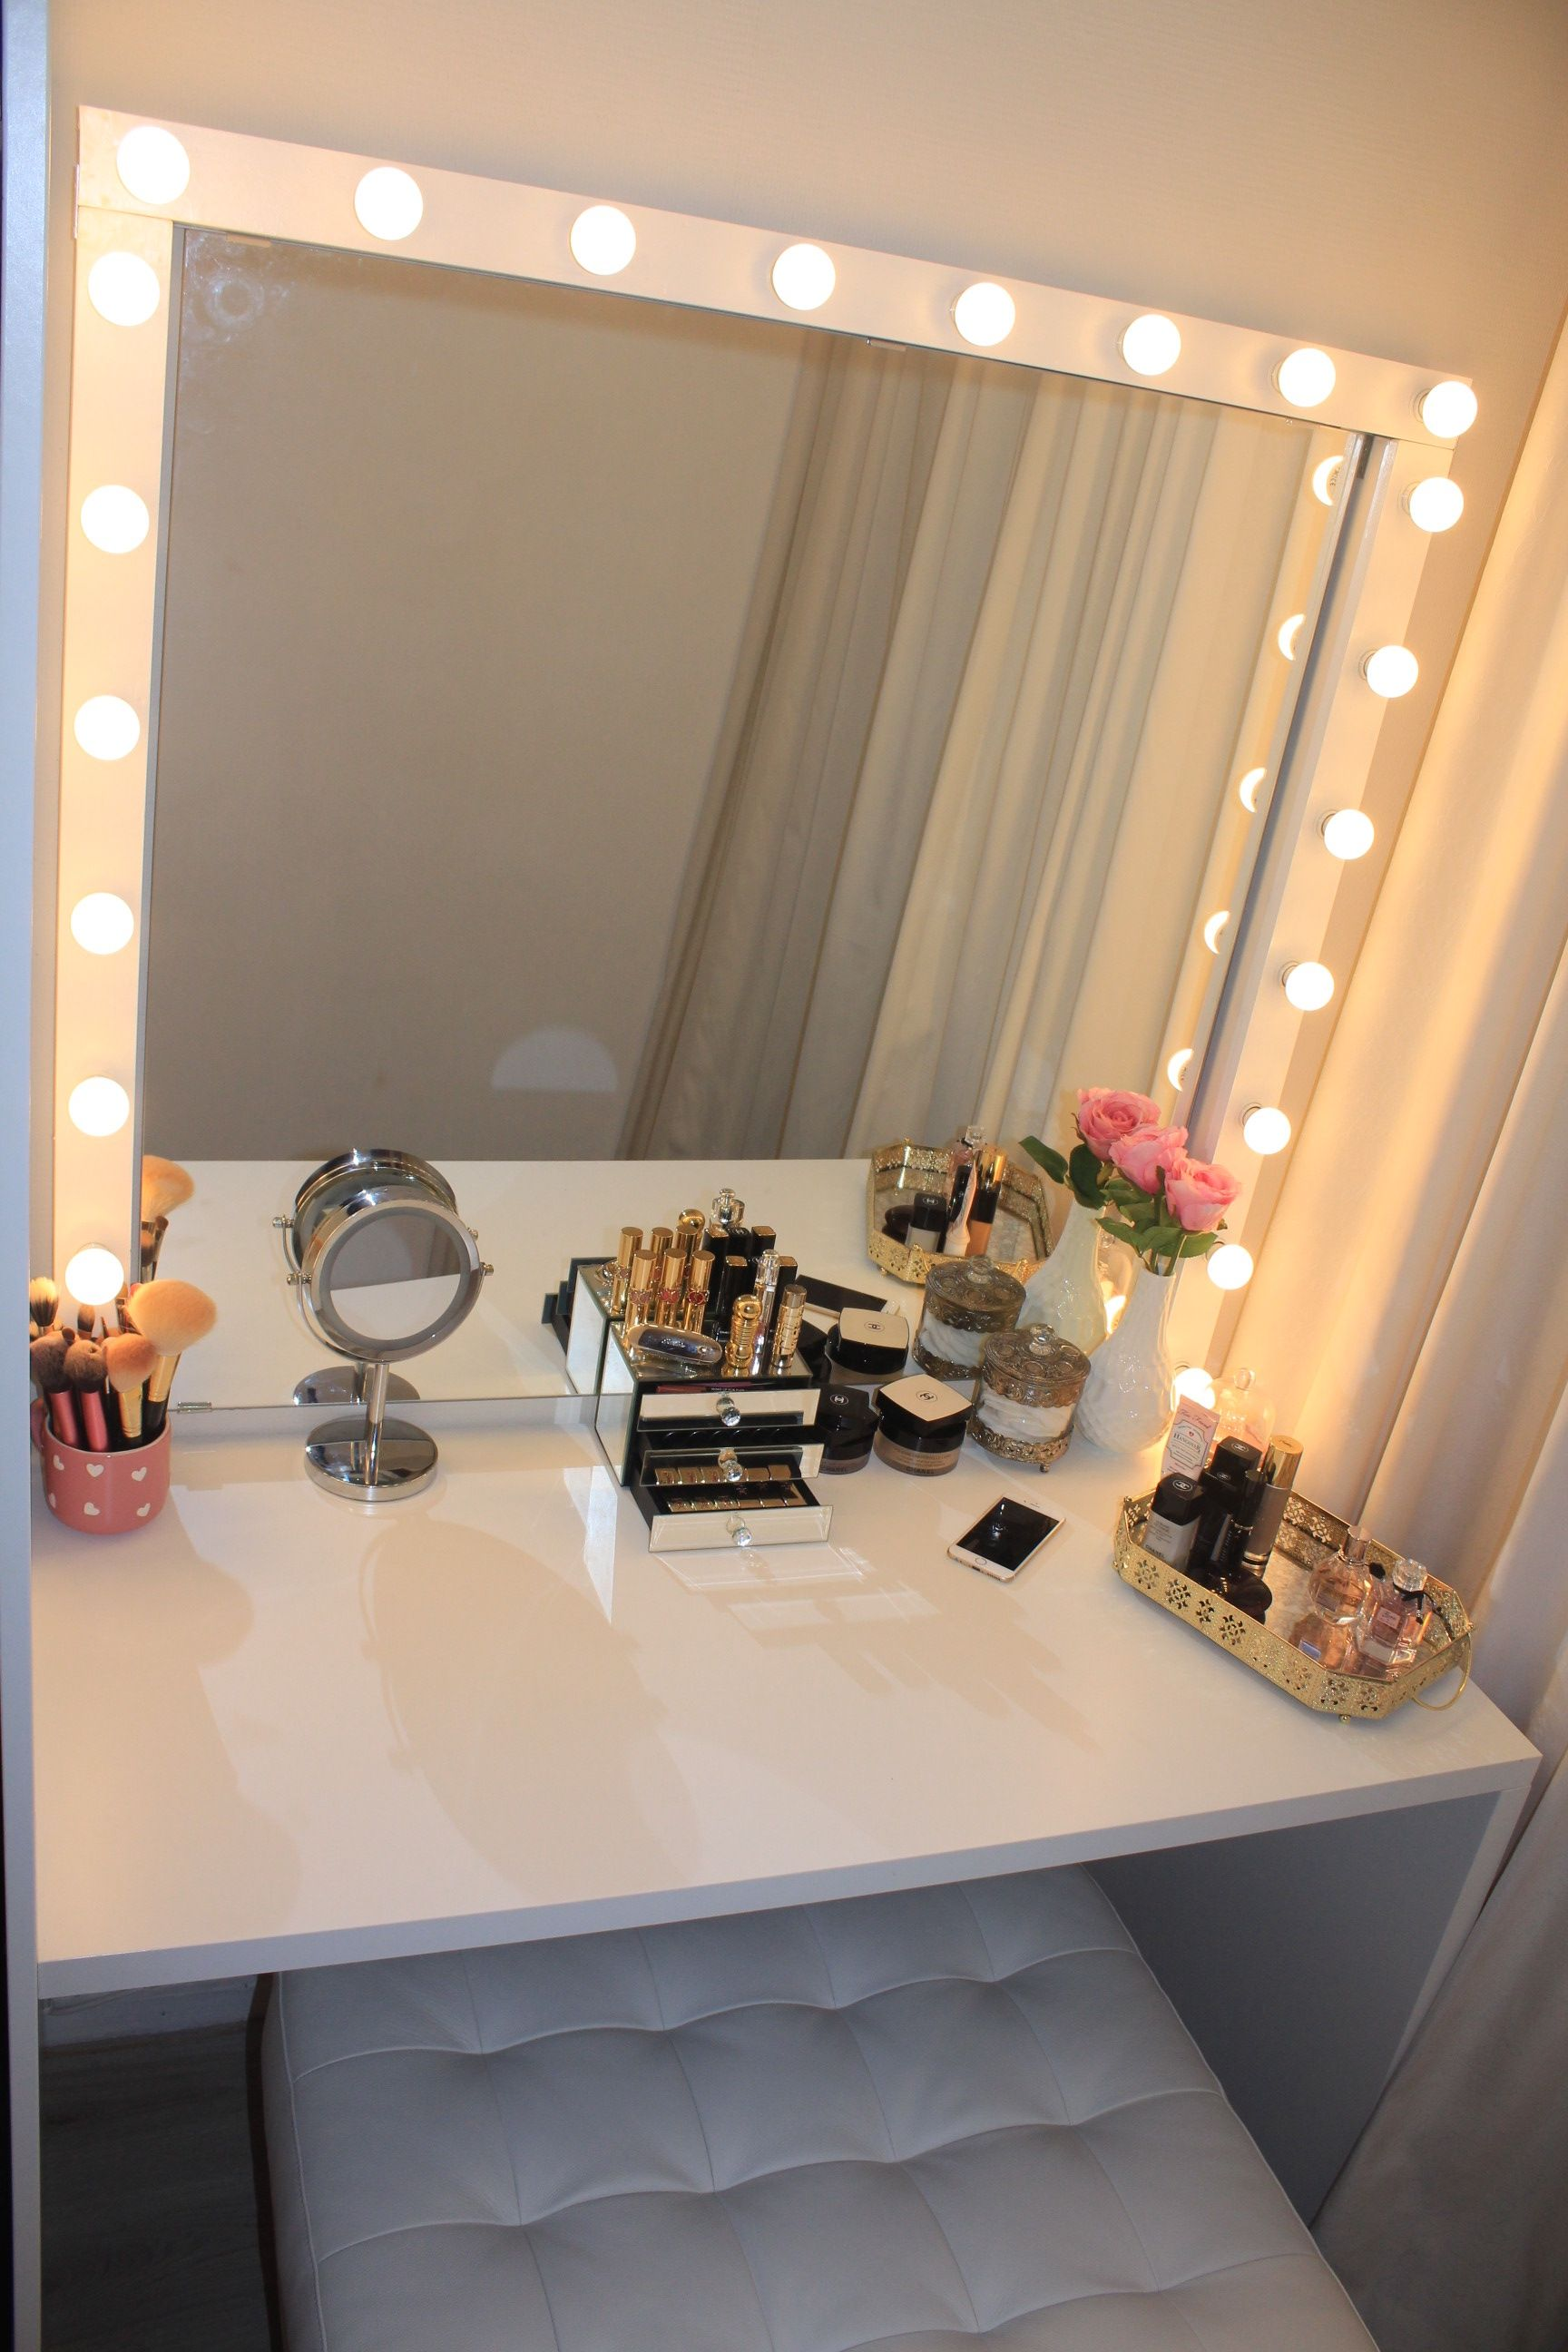 Ikea Badkamer Spiegel Led Top Make Up Tafel Met Licht @bfy54 - Agneswamu